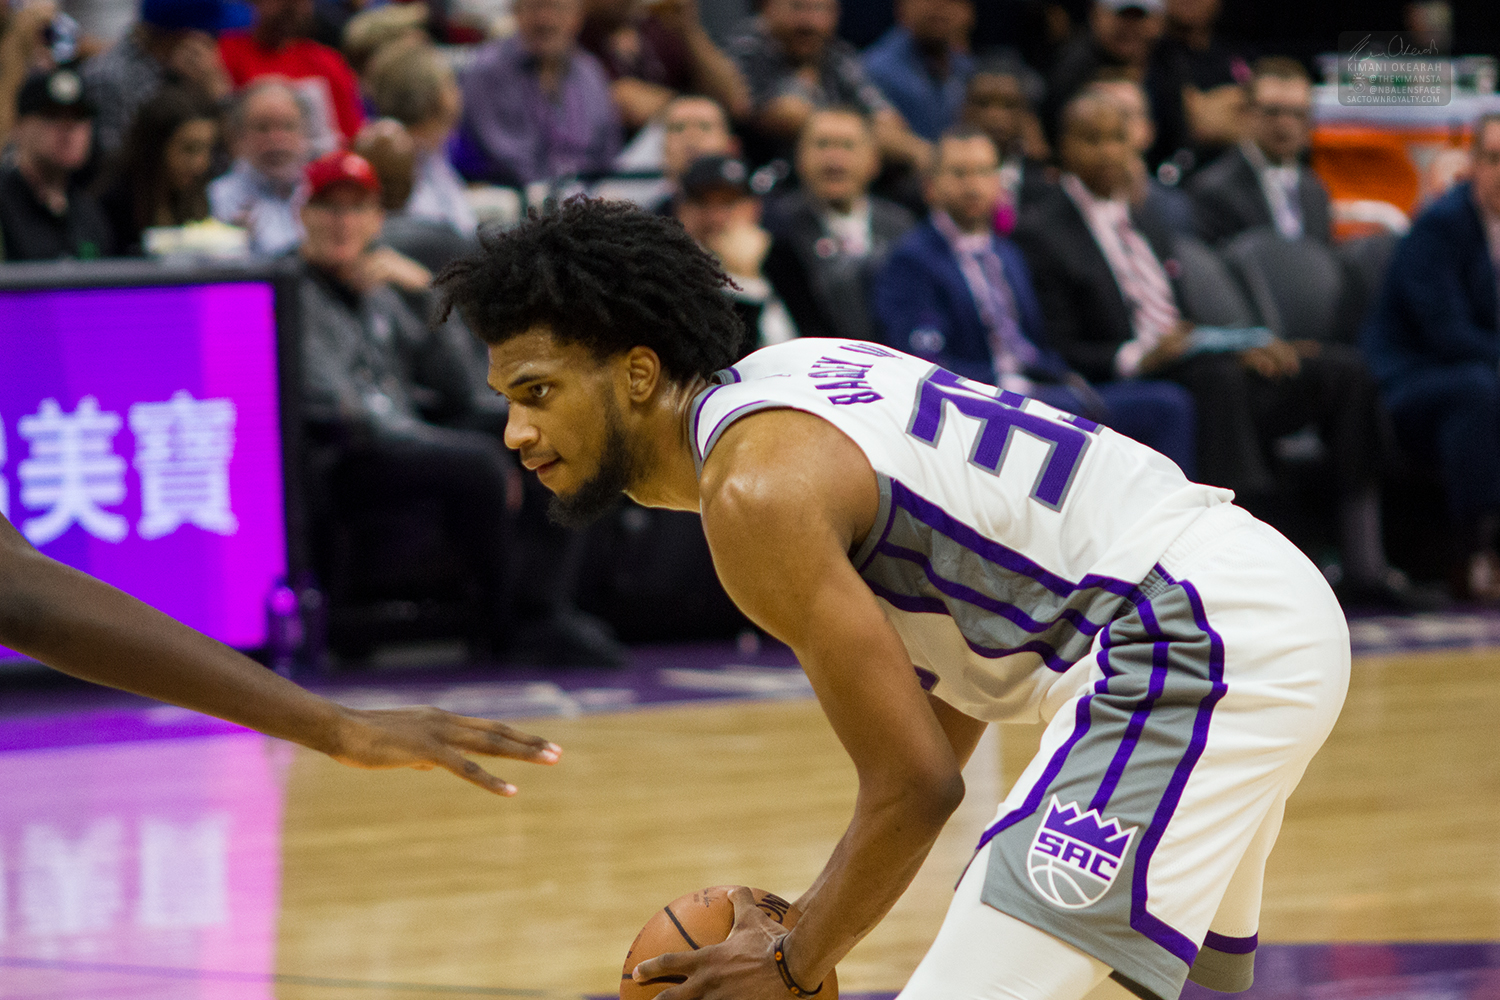 Marvin Bagley says he is fully healthy, working to improve his strength and shooting